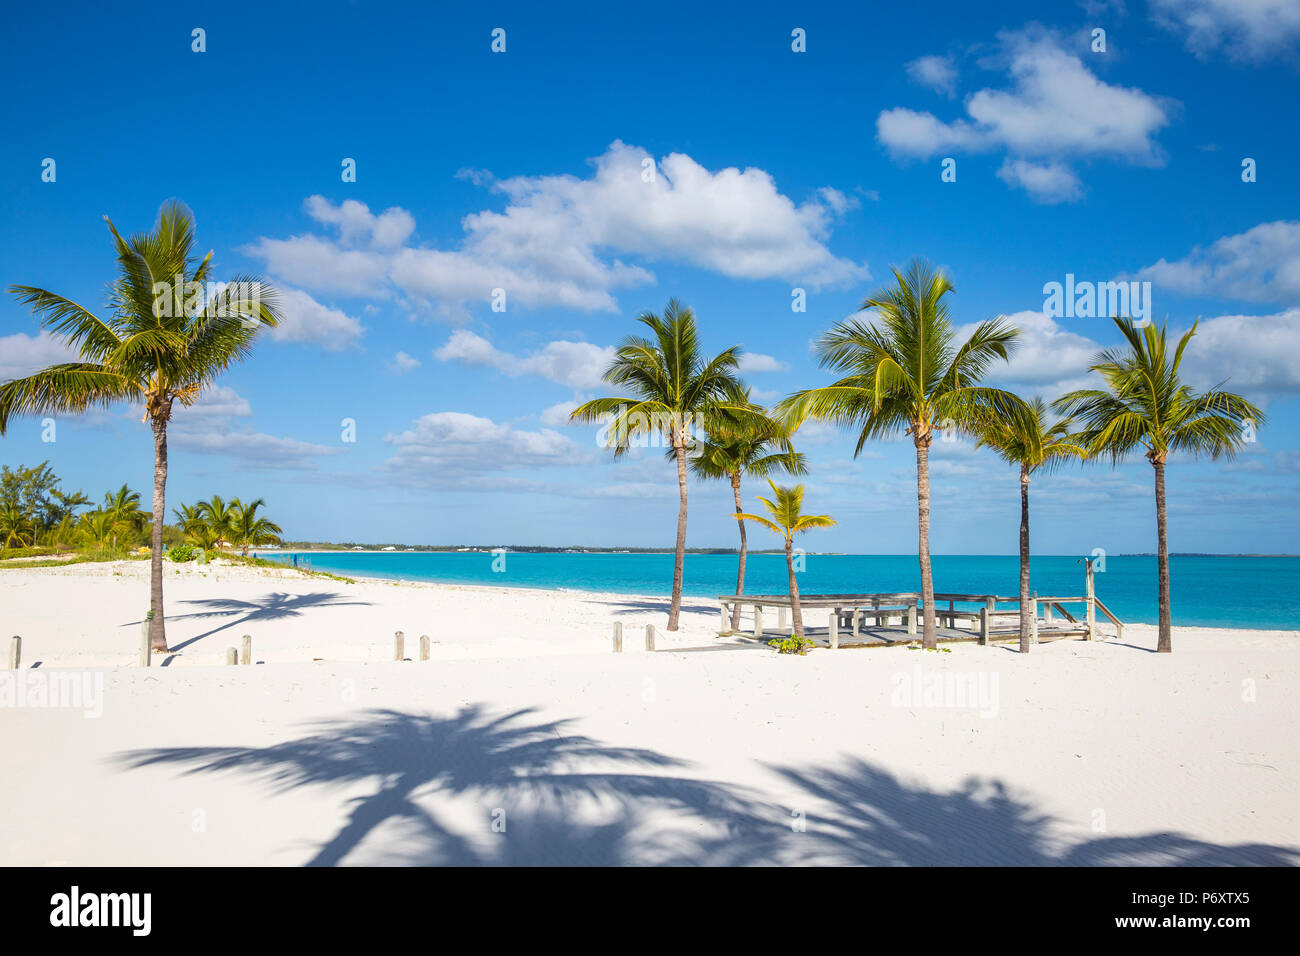 Bahamas, Abaco Islands, Great Abaco, Beach at Treasure Cay - Stock Image